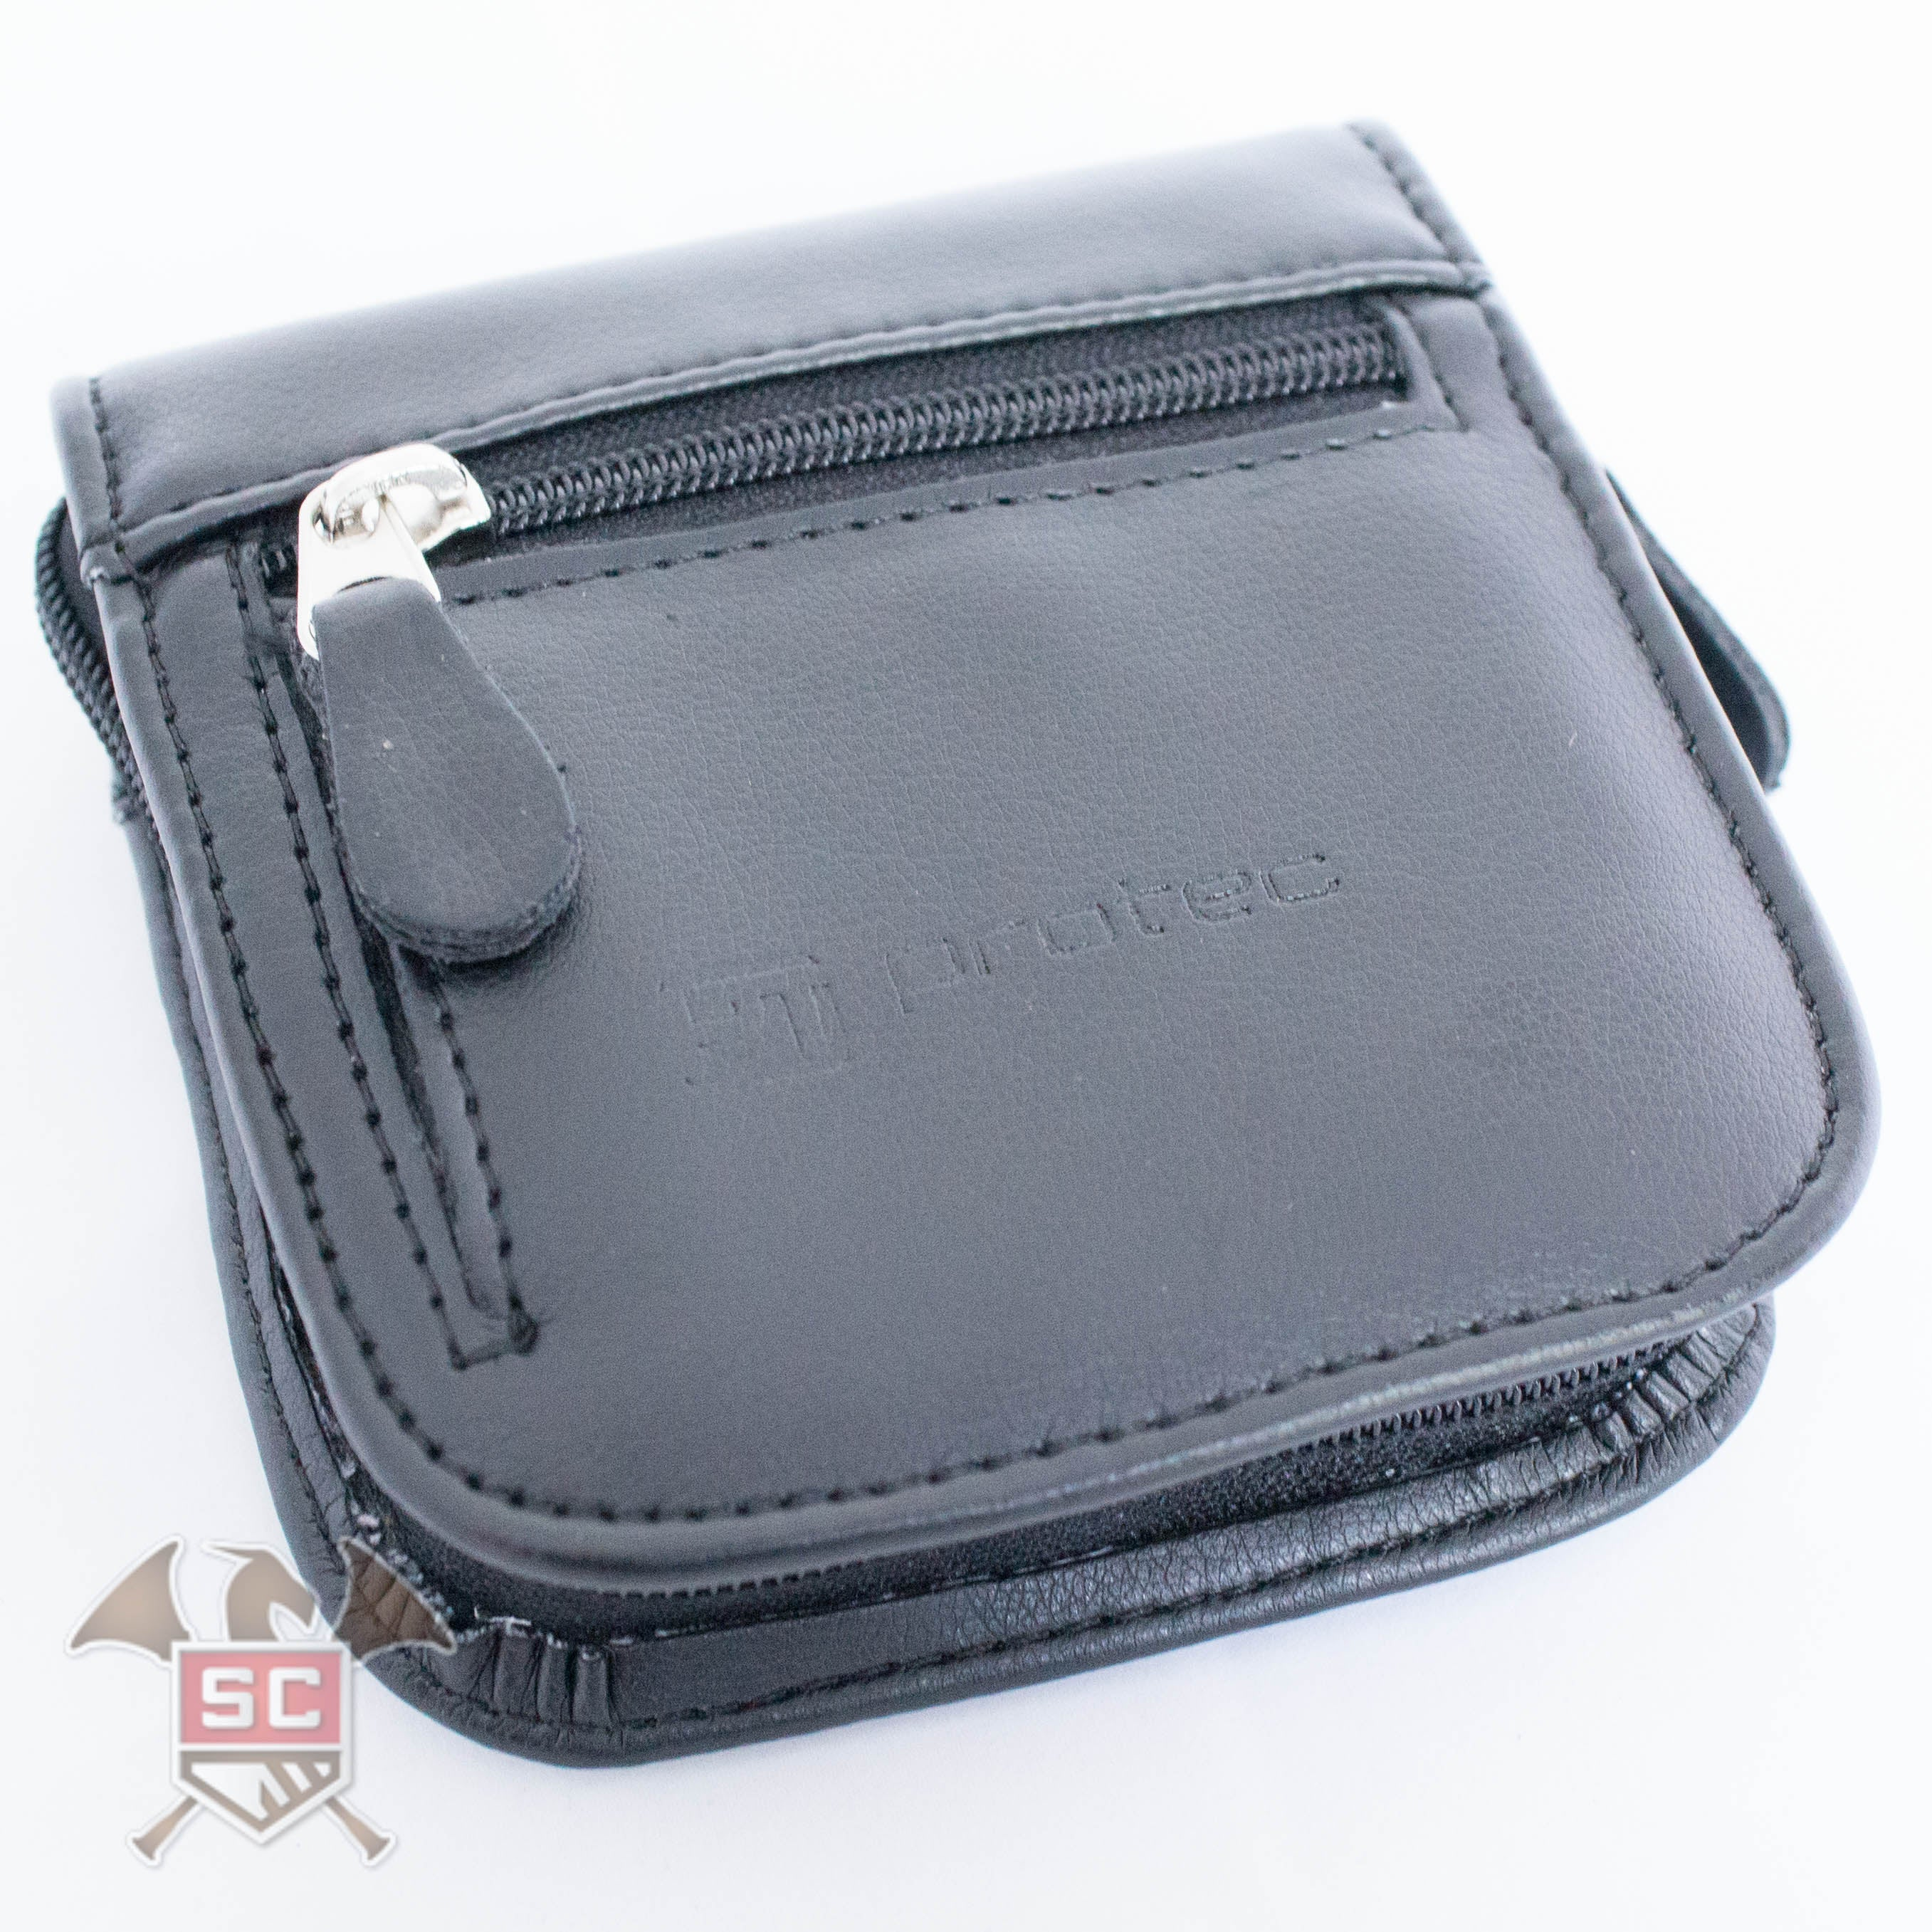 Protec 2 Piece Leather Mouthpiece Pouch - Black